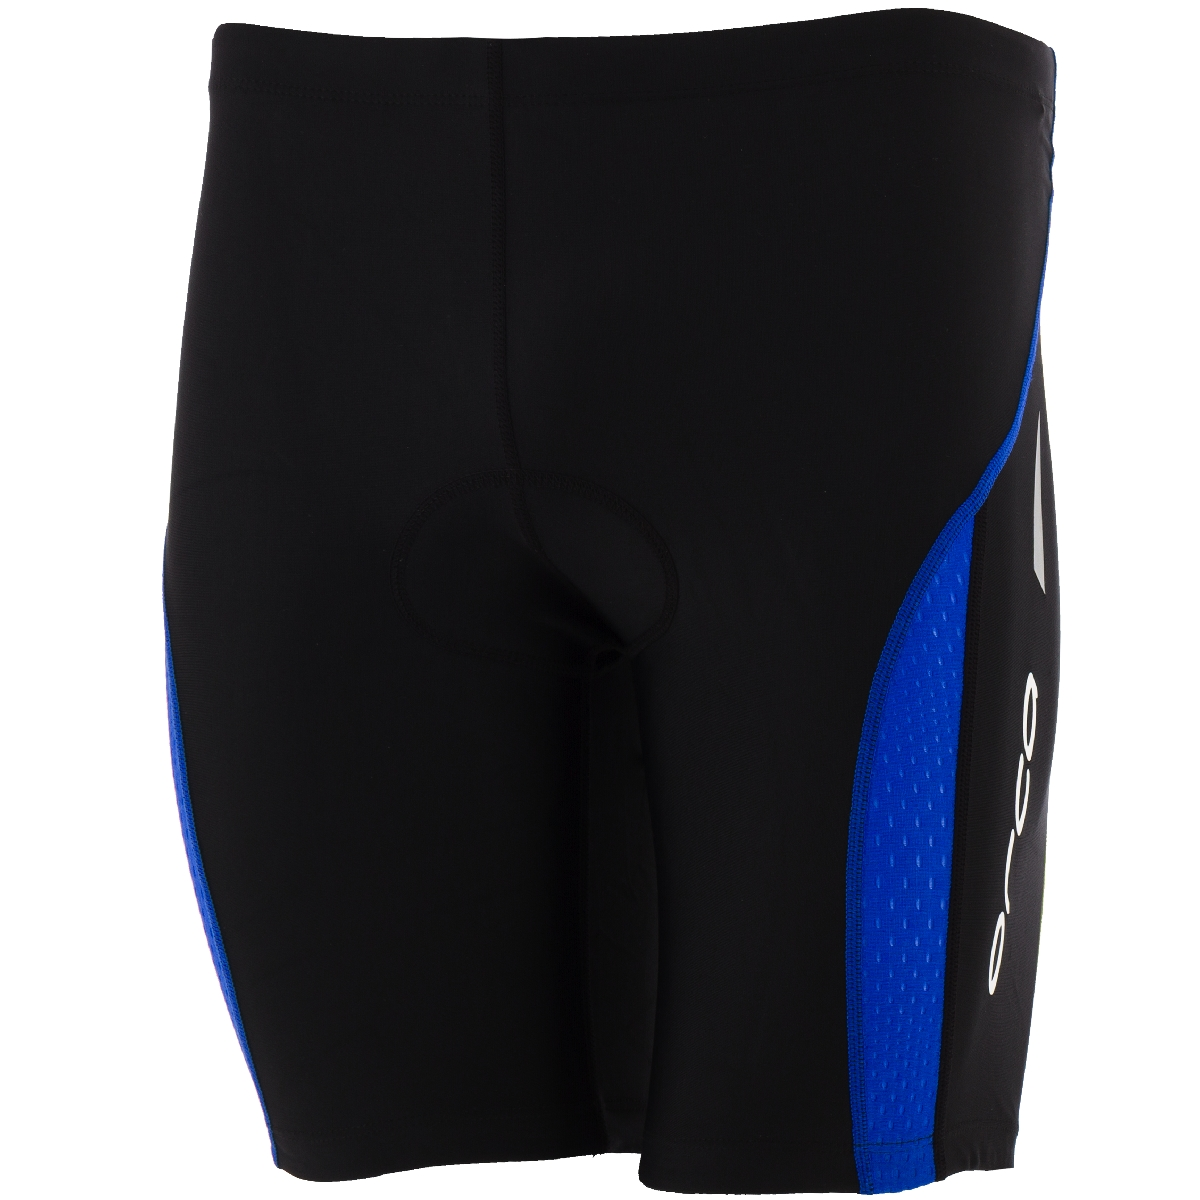 Orca Core Triathlon Short Men's Size S Black RoyalBlue U.S.A. & Canada